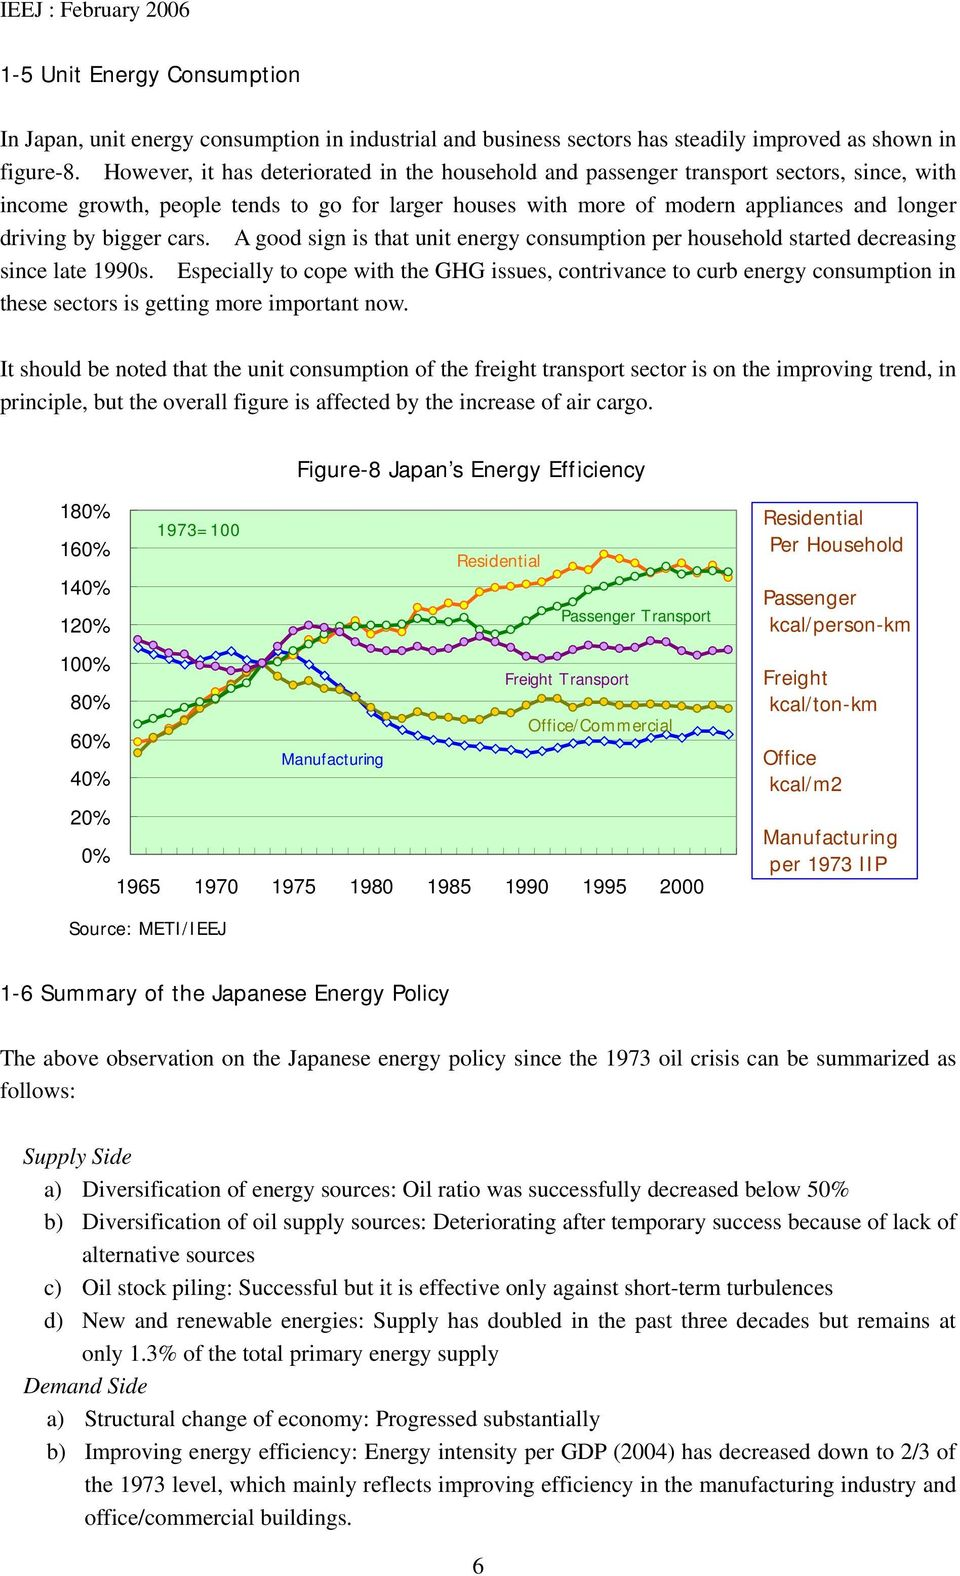 bigger cars. A good sign is that unit energy consumption per household started decreasing since late 1990s.